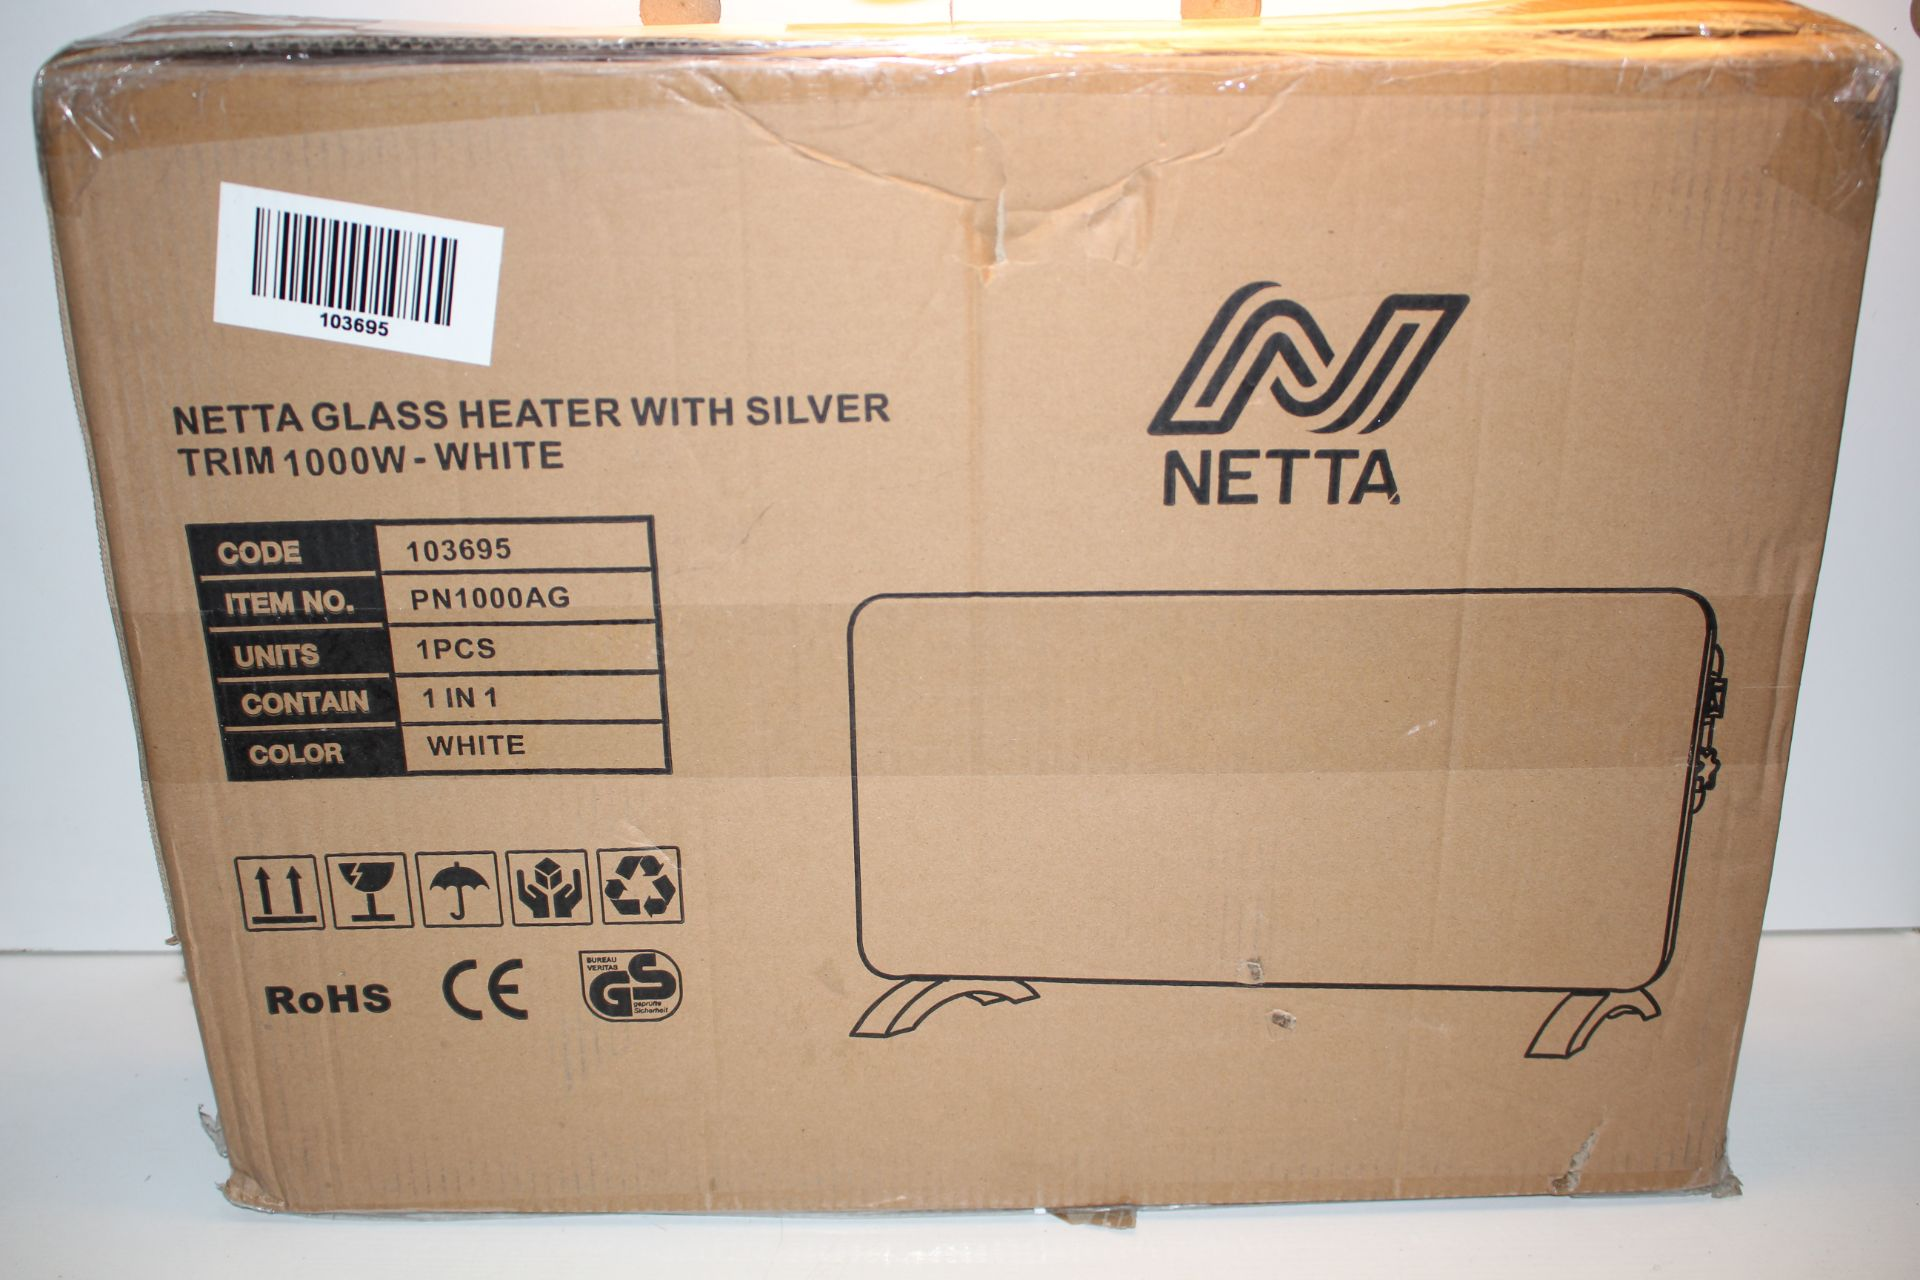 BOXED NETTA GLASS HEATER WITH SILVER TRIM 1000W - WHITE RRP $39.99Condition ReportAppraisal